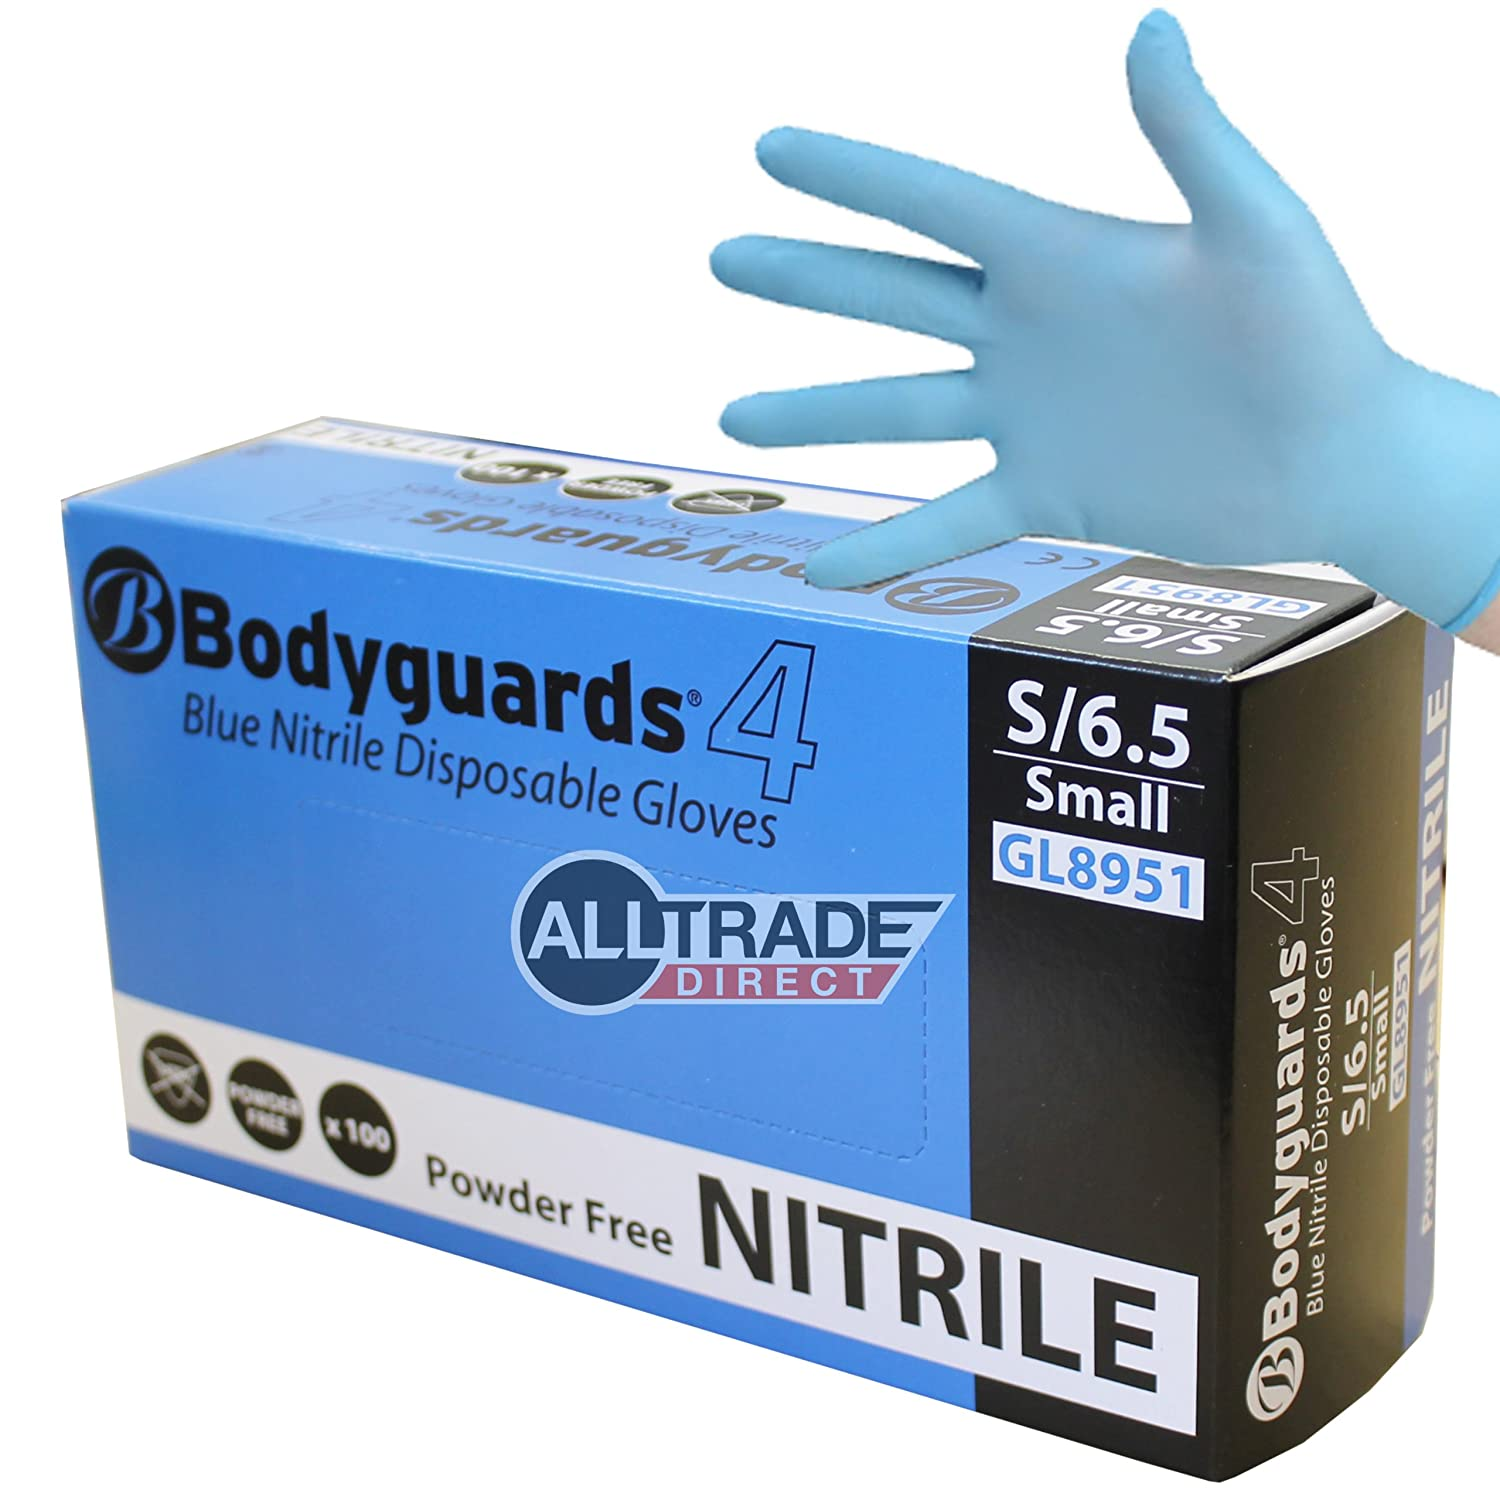 300 x BODYGUARDS 4 BLUE NITRILE SMALL POWDER FREE DISPOSABLE GLOVES 8951